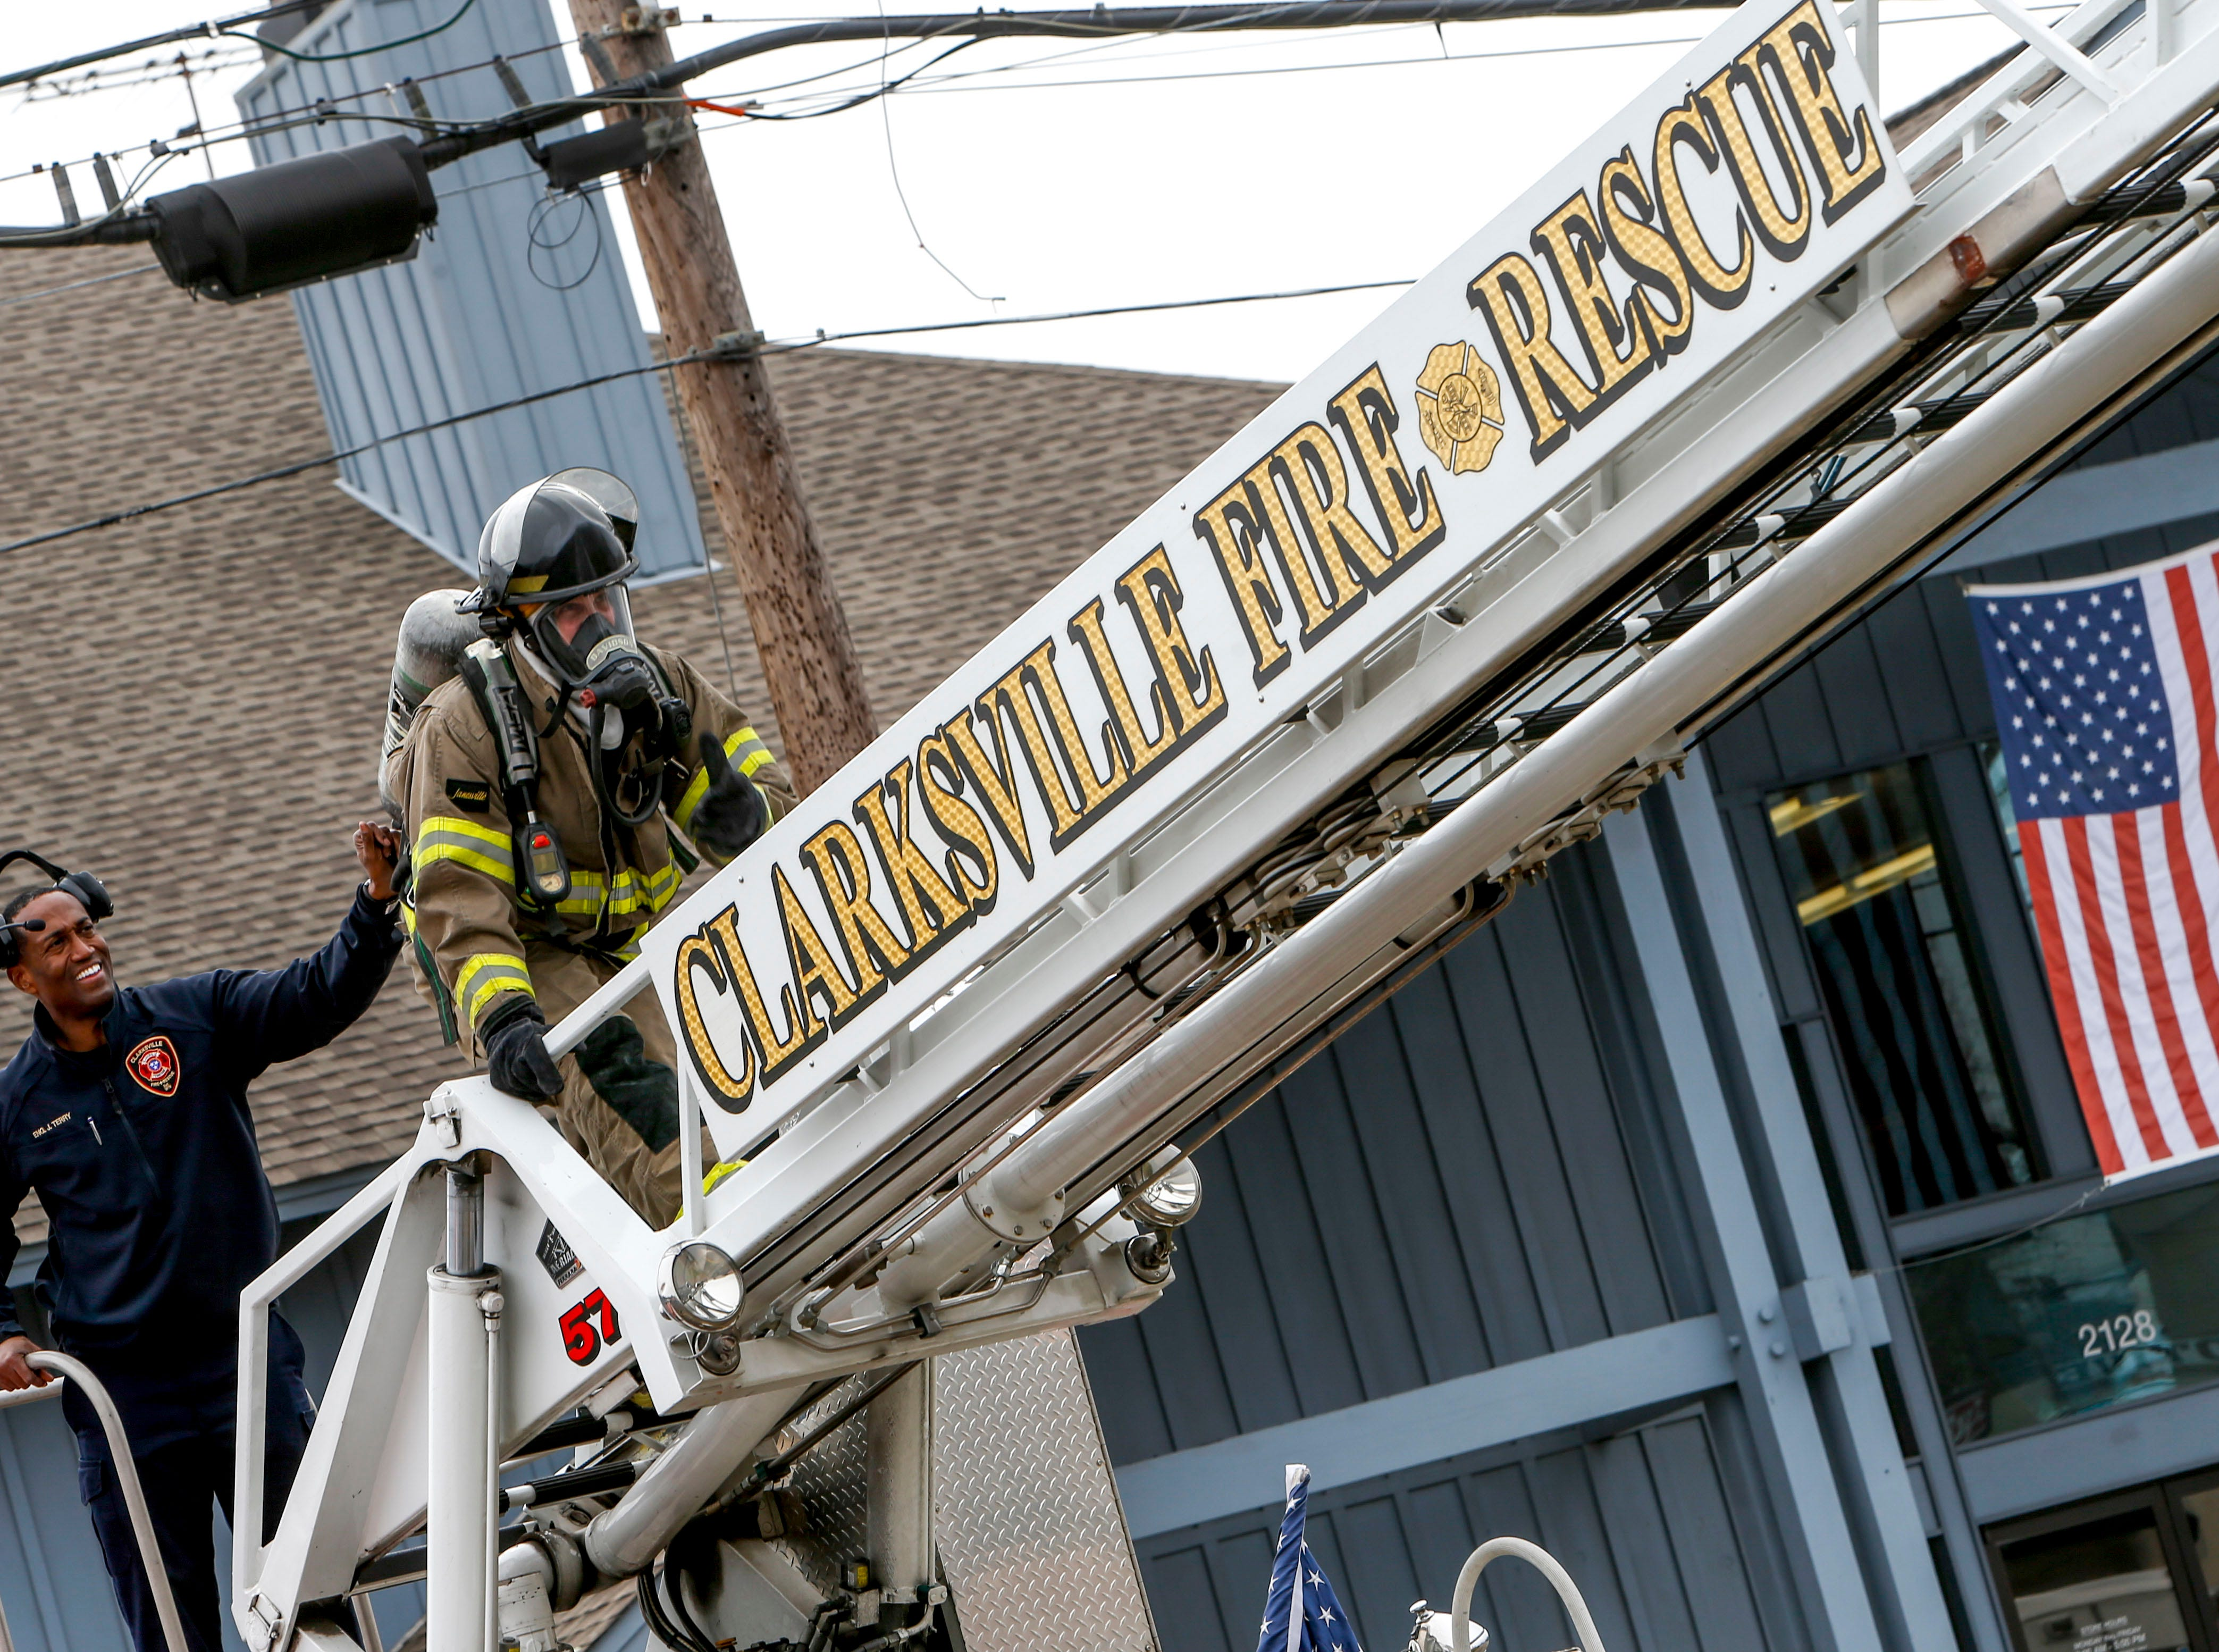 A Clarksville Fire Rescue firefighter walks across a ladder to operate a hose facing into the building at Clarksville Guns & Archery in Clarksville, Tenn., on Tuesday, March 12, 2019.